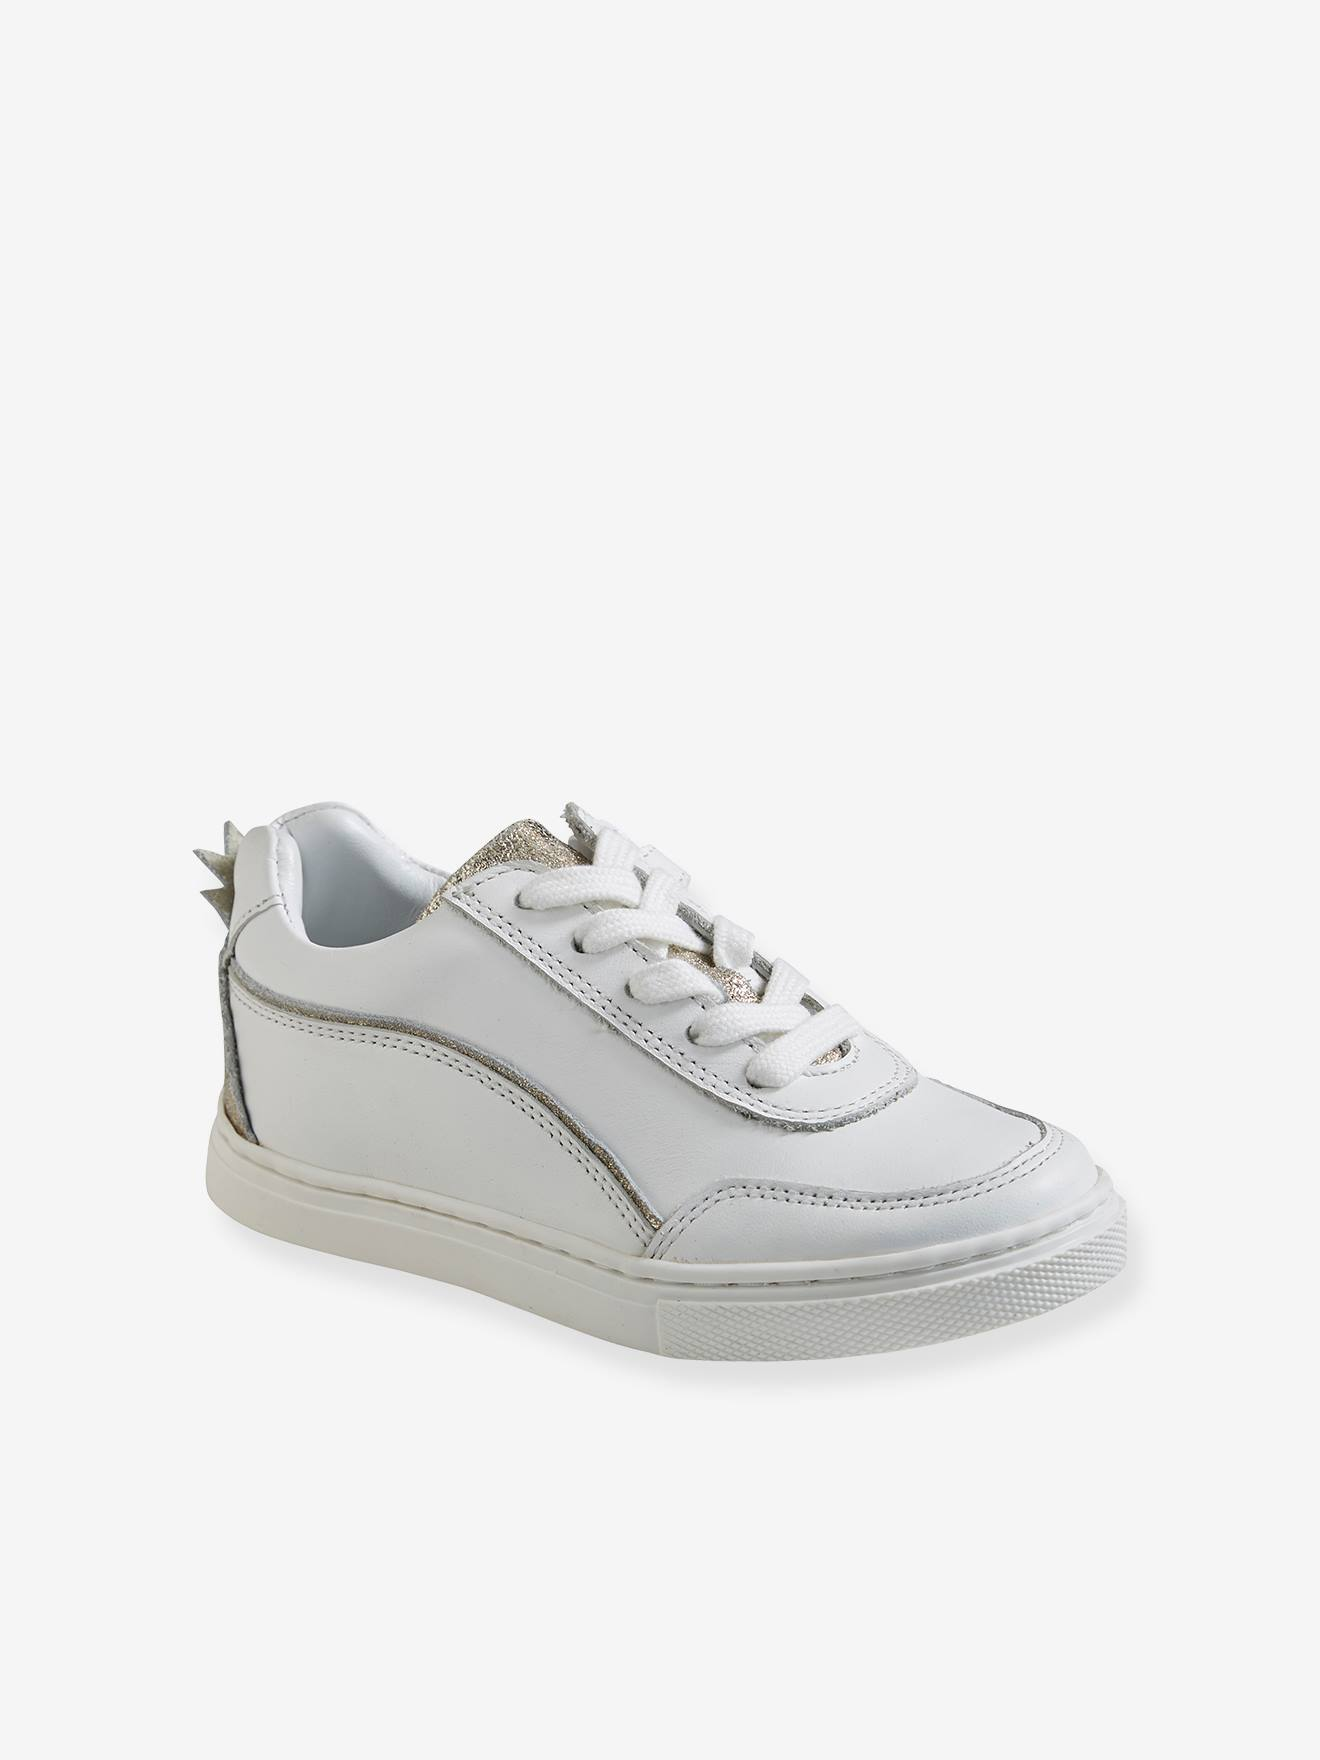 Leather Trainers, with Pineapple, for